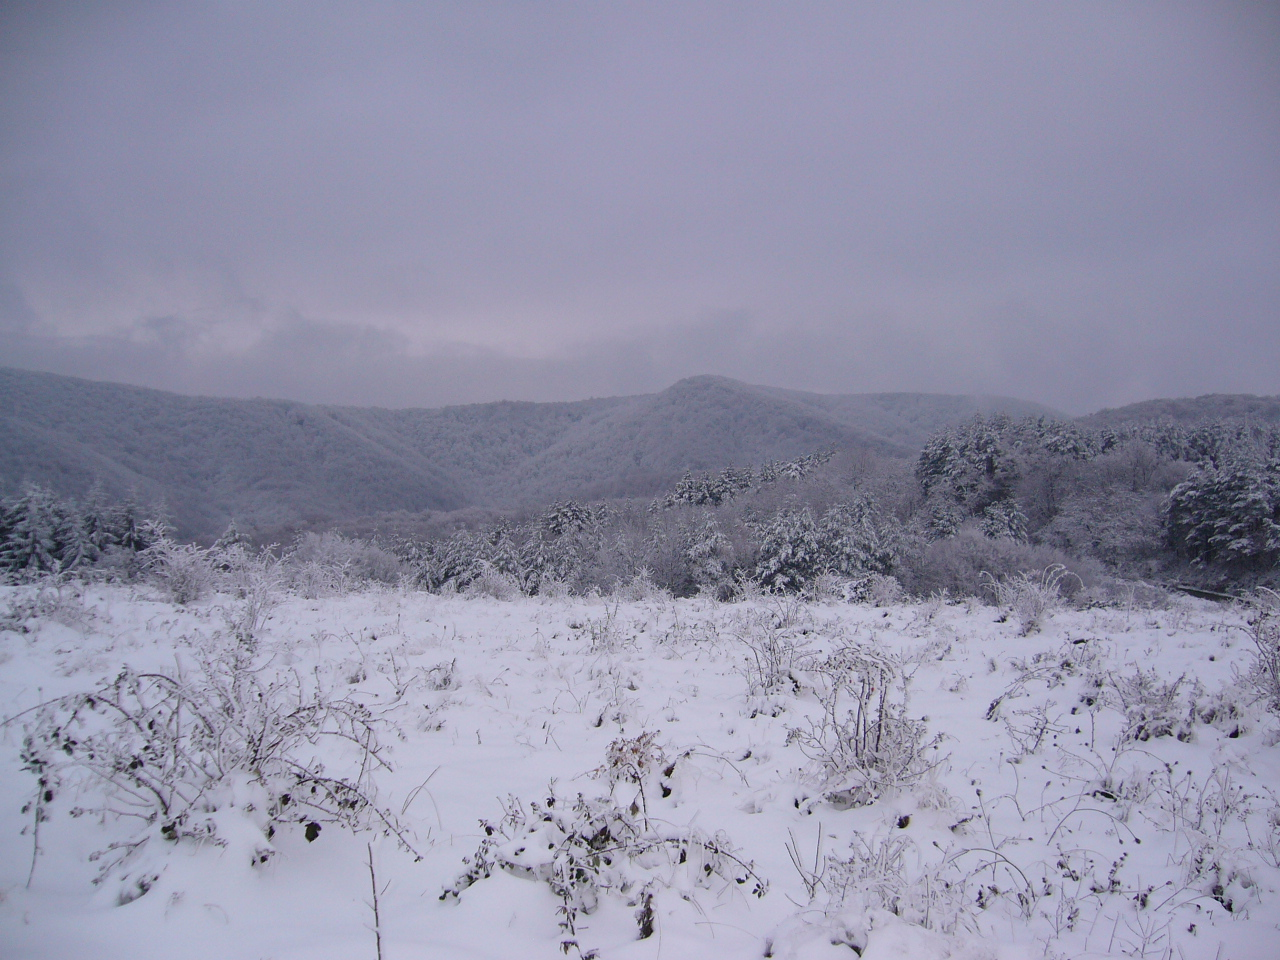 A PERSPECTIVE PIECE OF LAND 4800 sq. m. FOR SALE 8km FROM GABROVO 500m FROM HOTEL